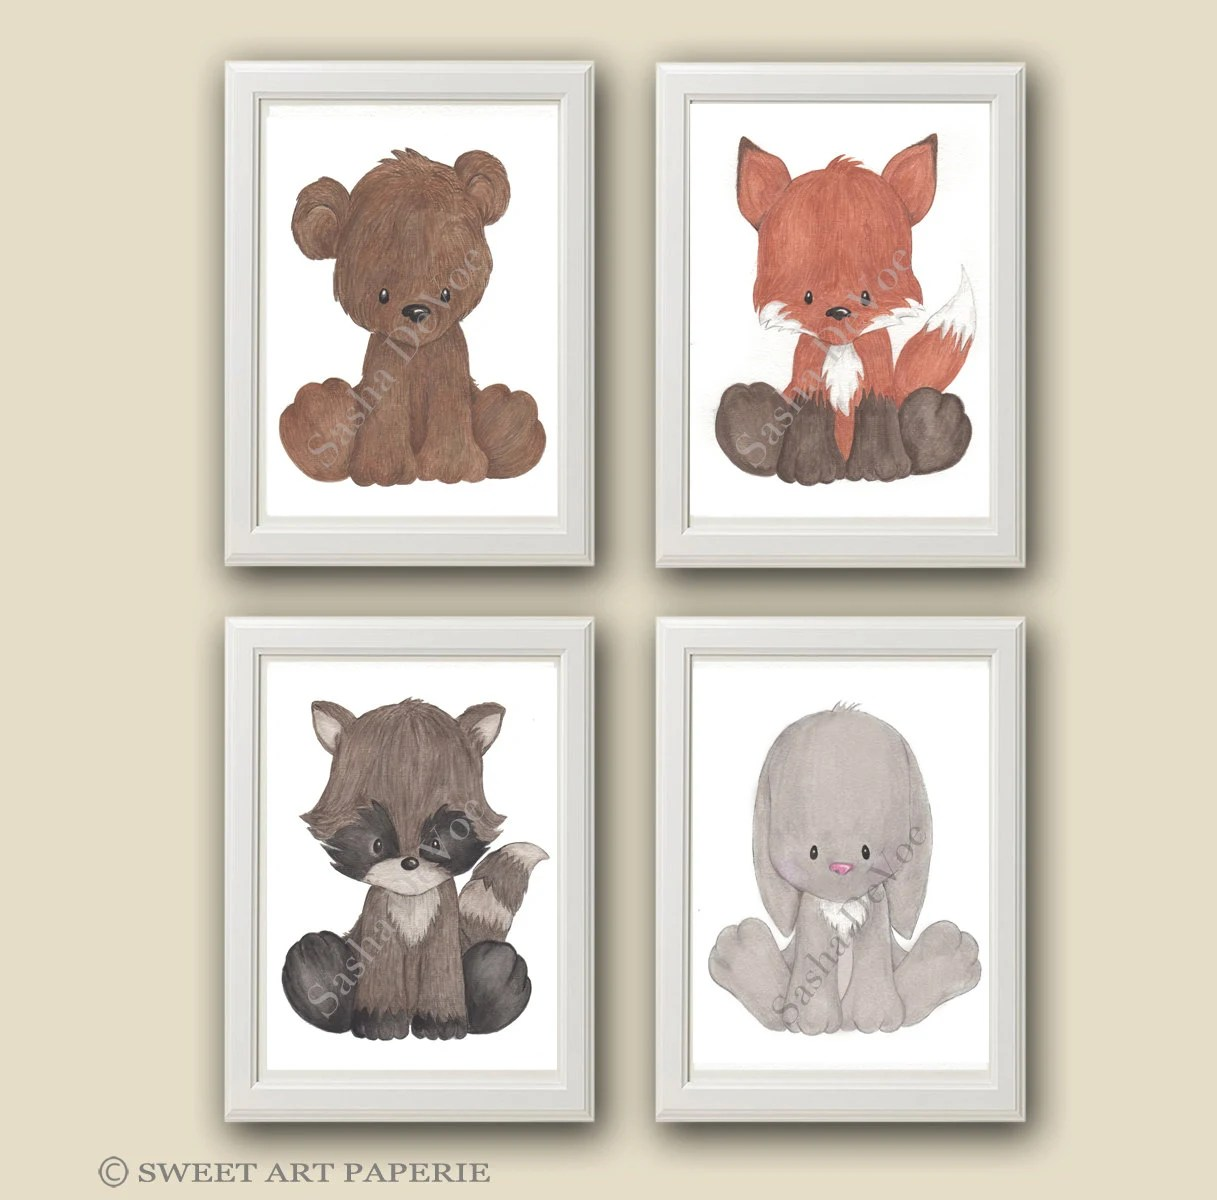 Baby Woodland Animals Nursery Art Nursery Decor Set of 4